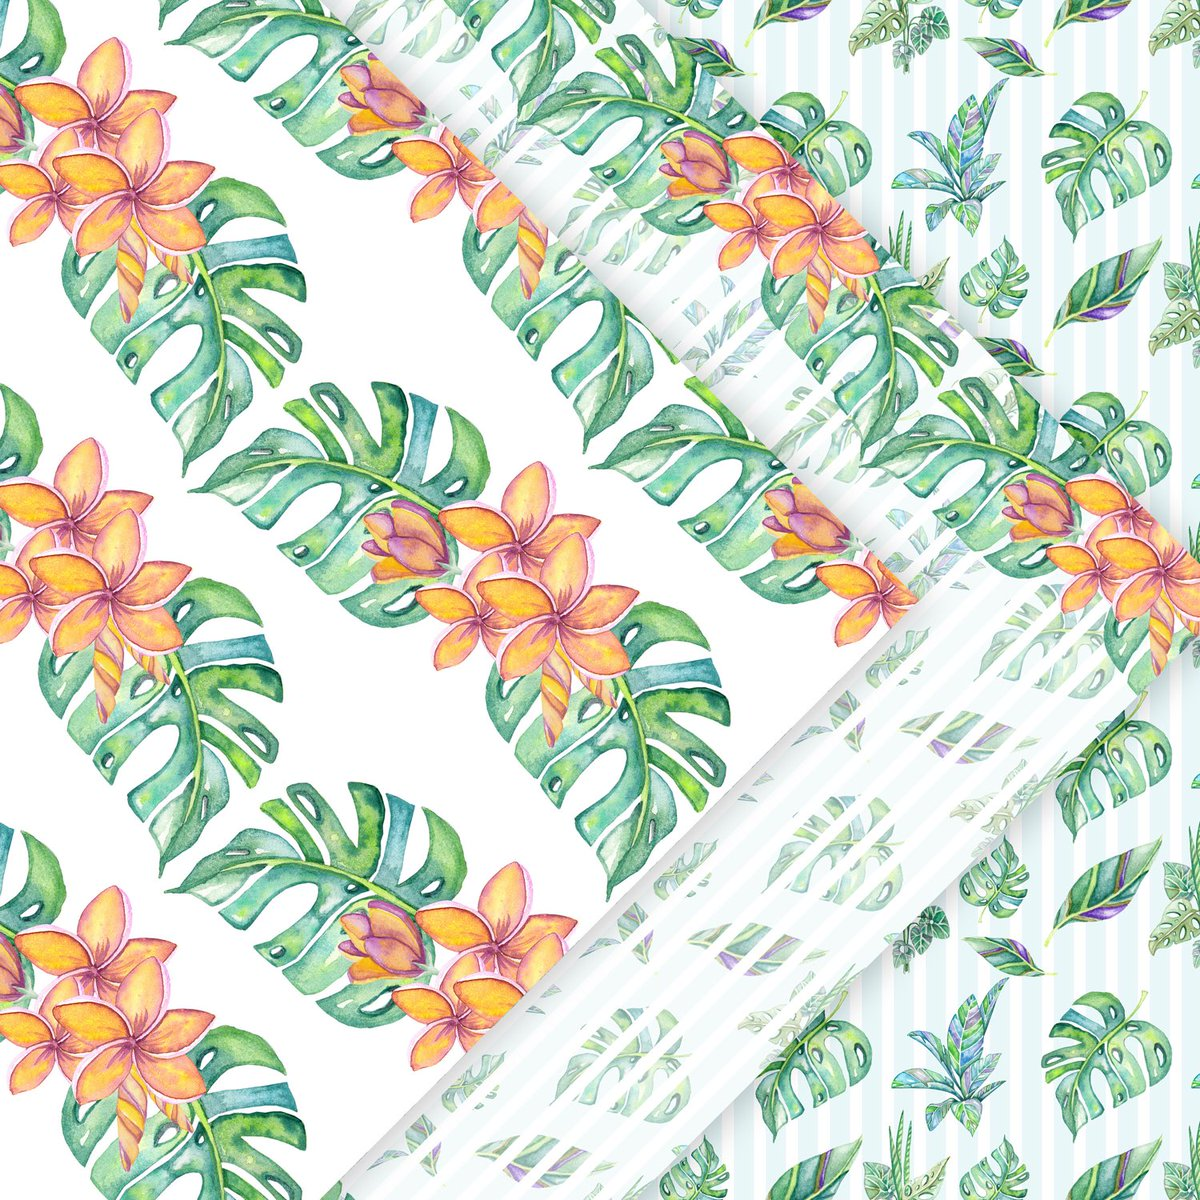 Excited to share this item from my #etsy shop: Monstera plant, Plumeria plant, Digital paper pack, Tropical flowers monstera watercolor Hawaii flowers Tahiti paper aloha party patterns #pink #floral #mothersday #monsteraplant  #plumeria #inaartsstudio